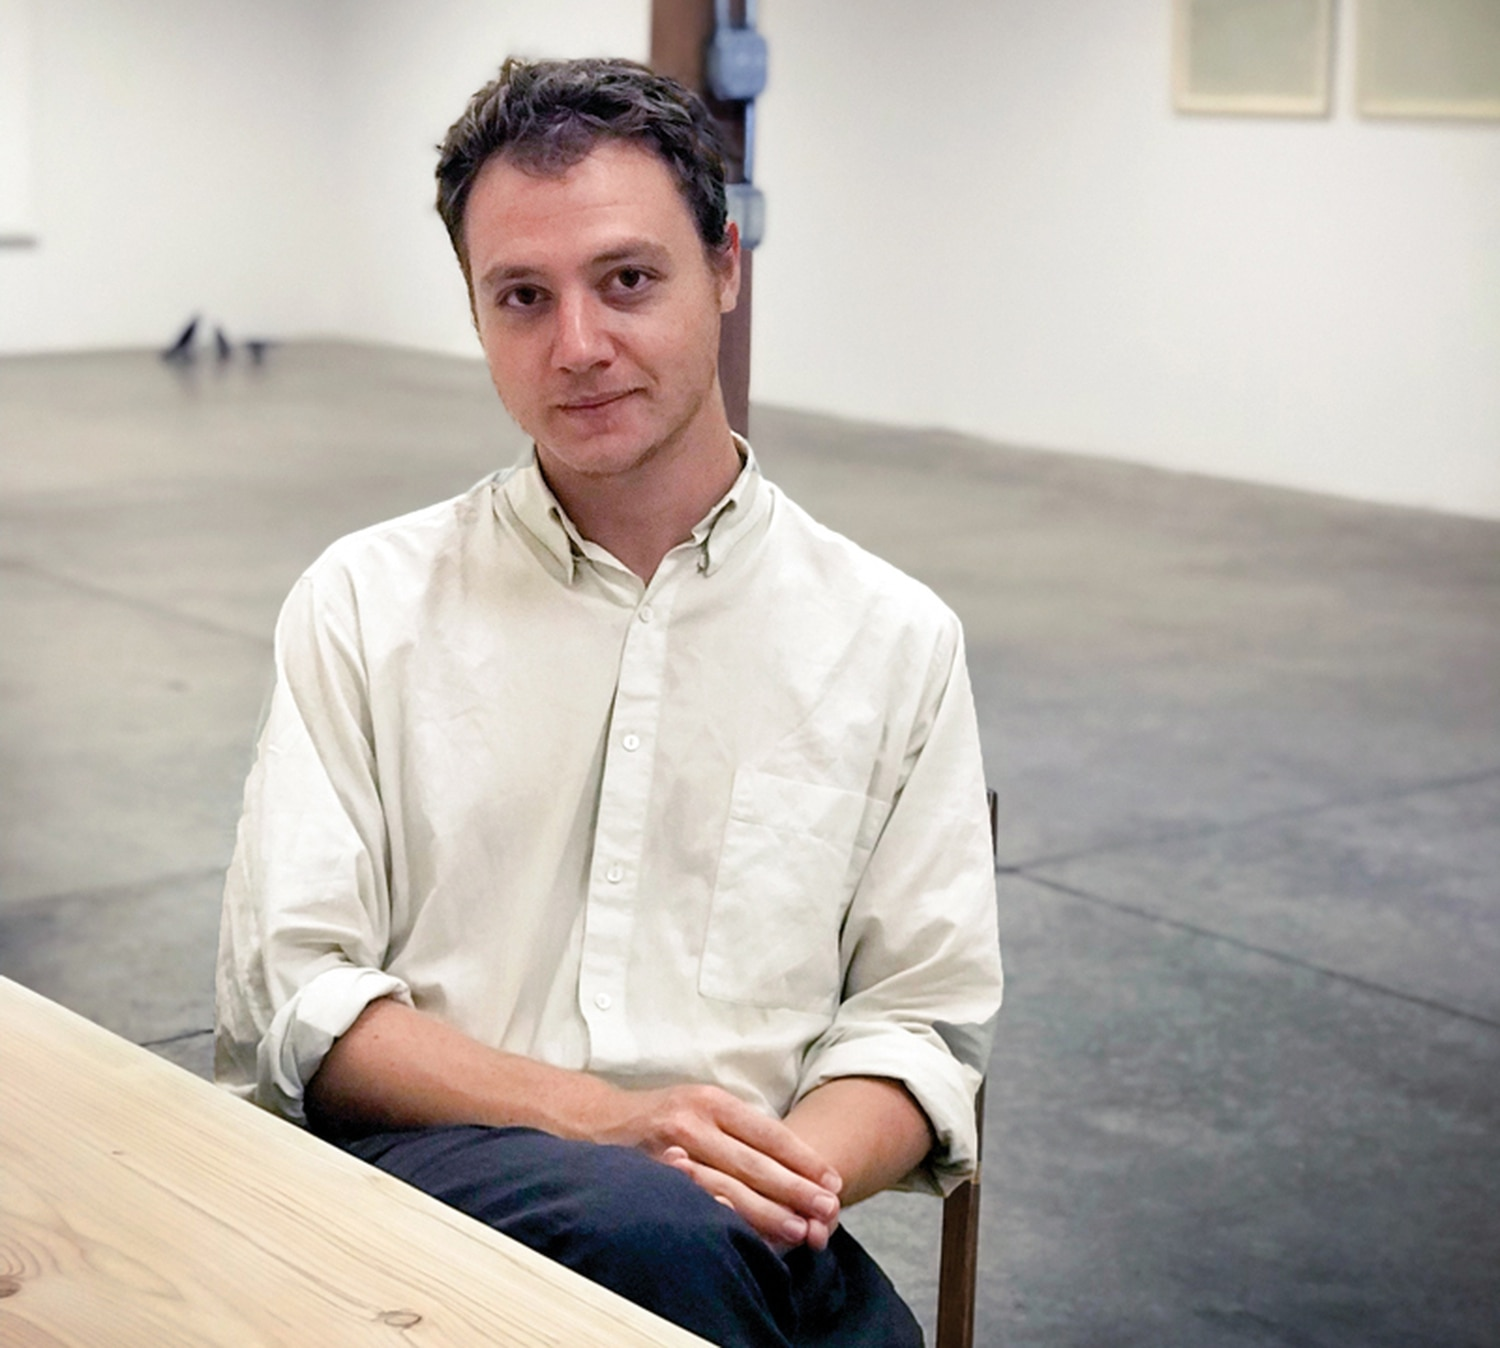 Max Baseman of 5. Gallery, a passion project that showcases work he finds important.